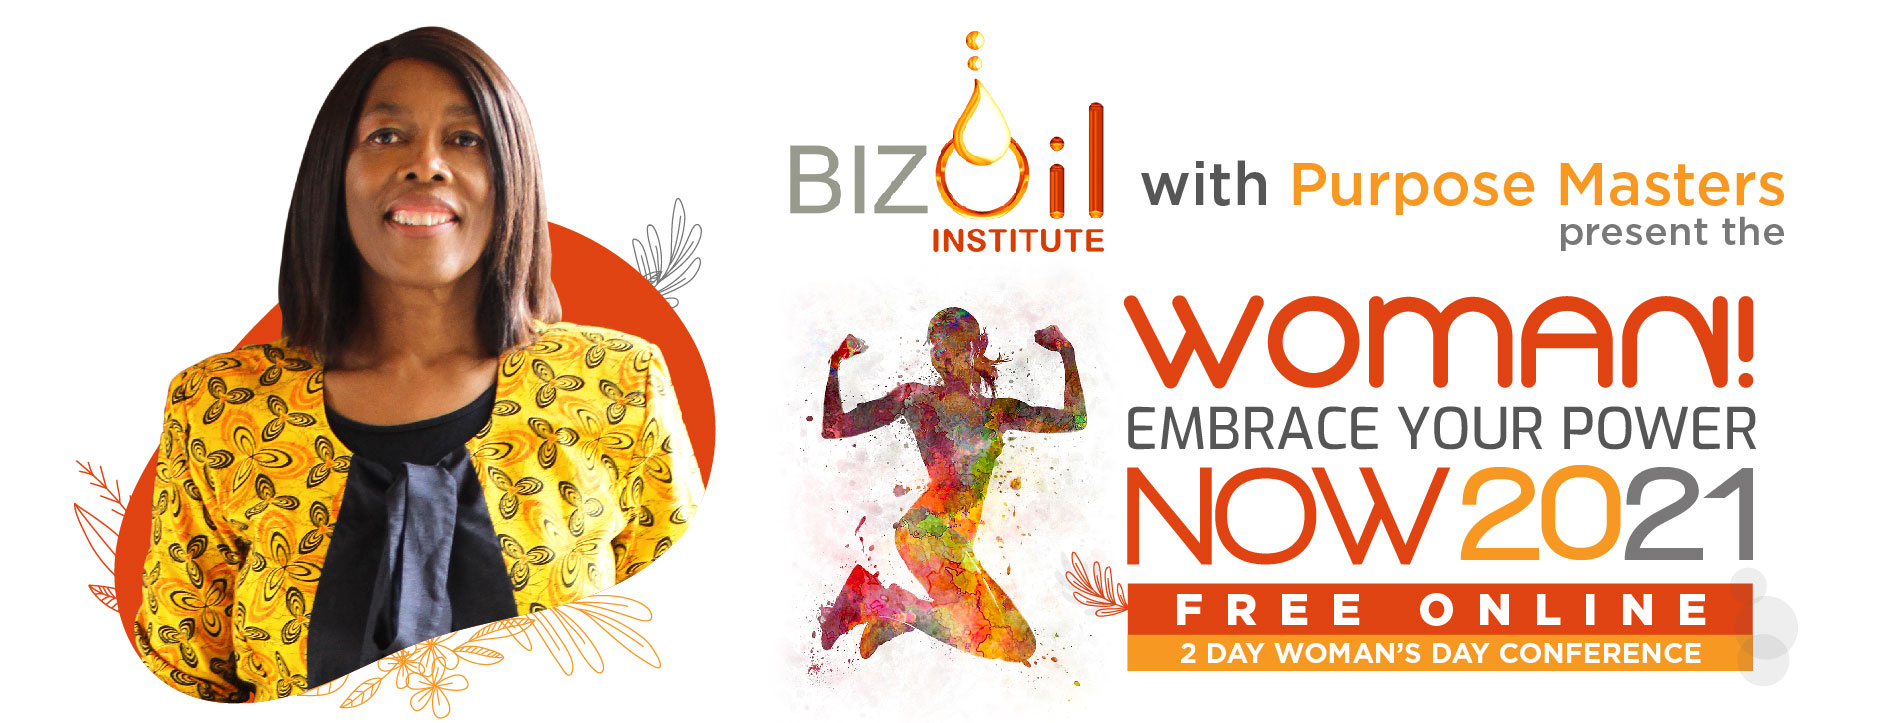 Woman! Embrace Your Power Now_Website Event Banner-01